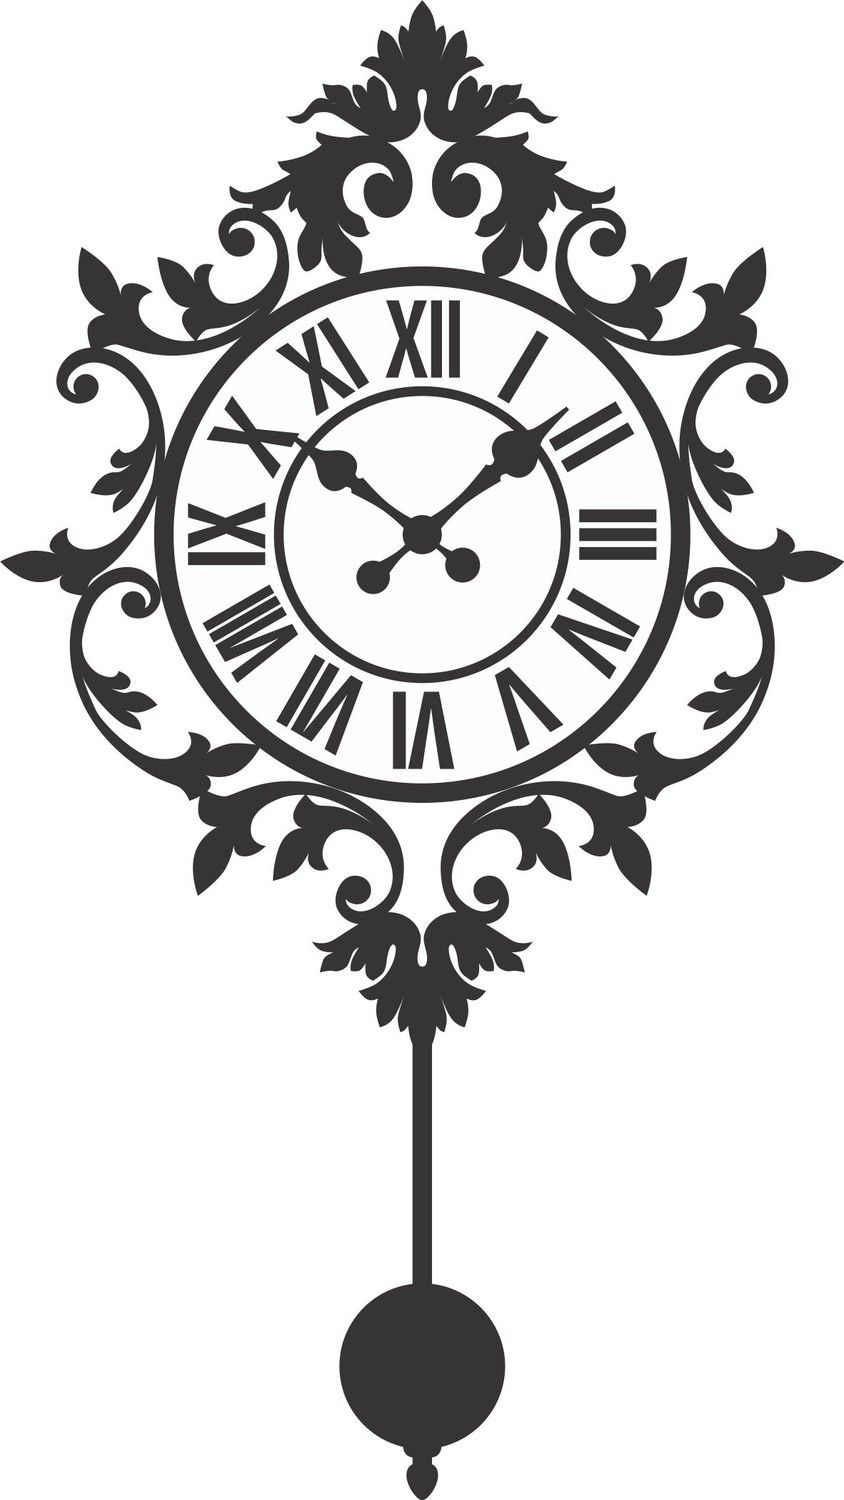 Old Clock Graphic Vector Clock Drawings Old Clocks Mural Wall Art